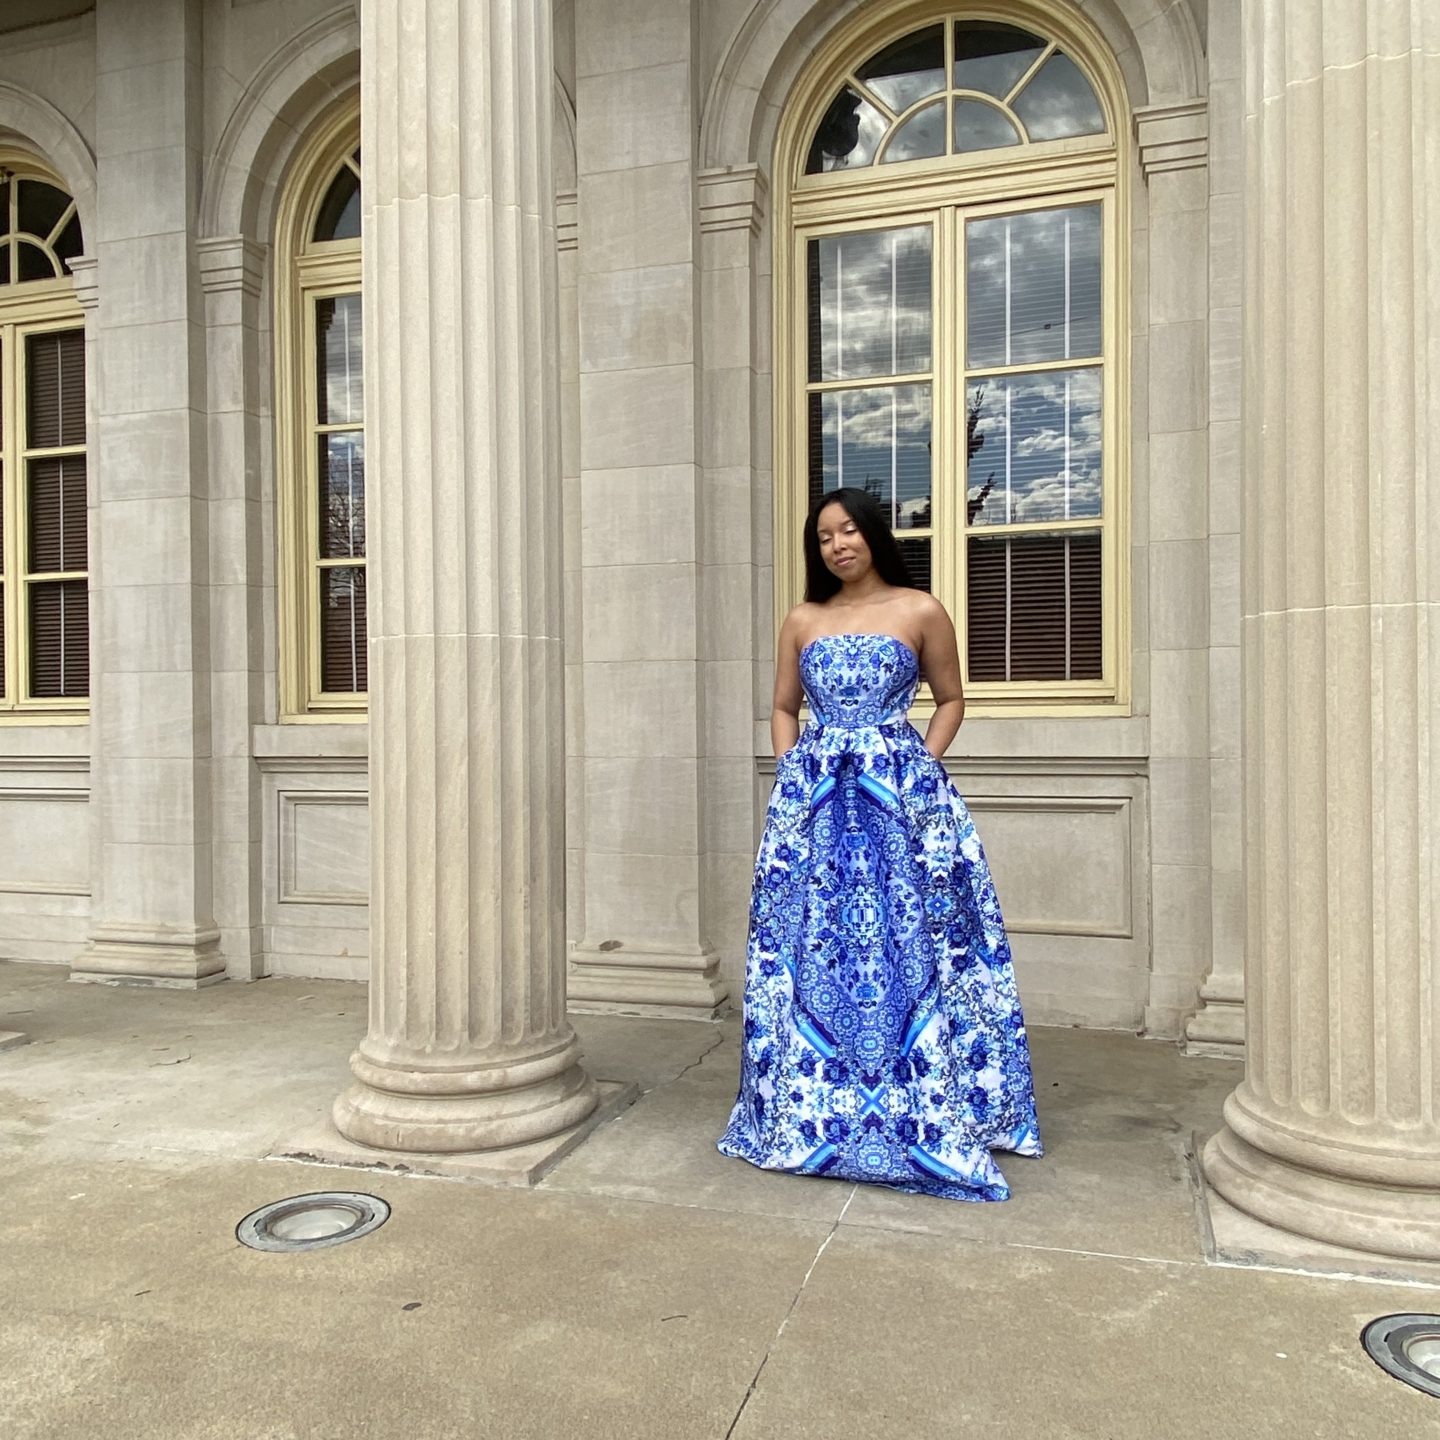 ball gown shopping and elegant glam